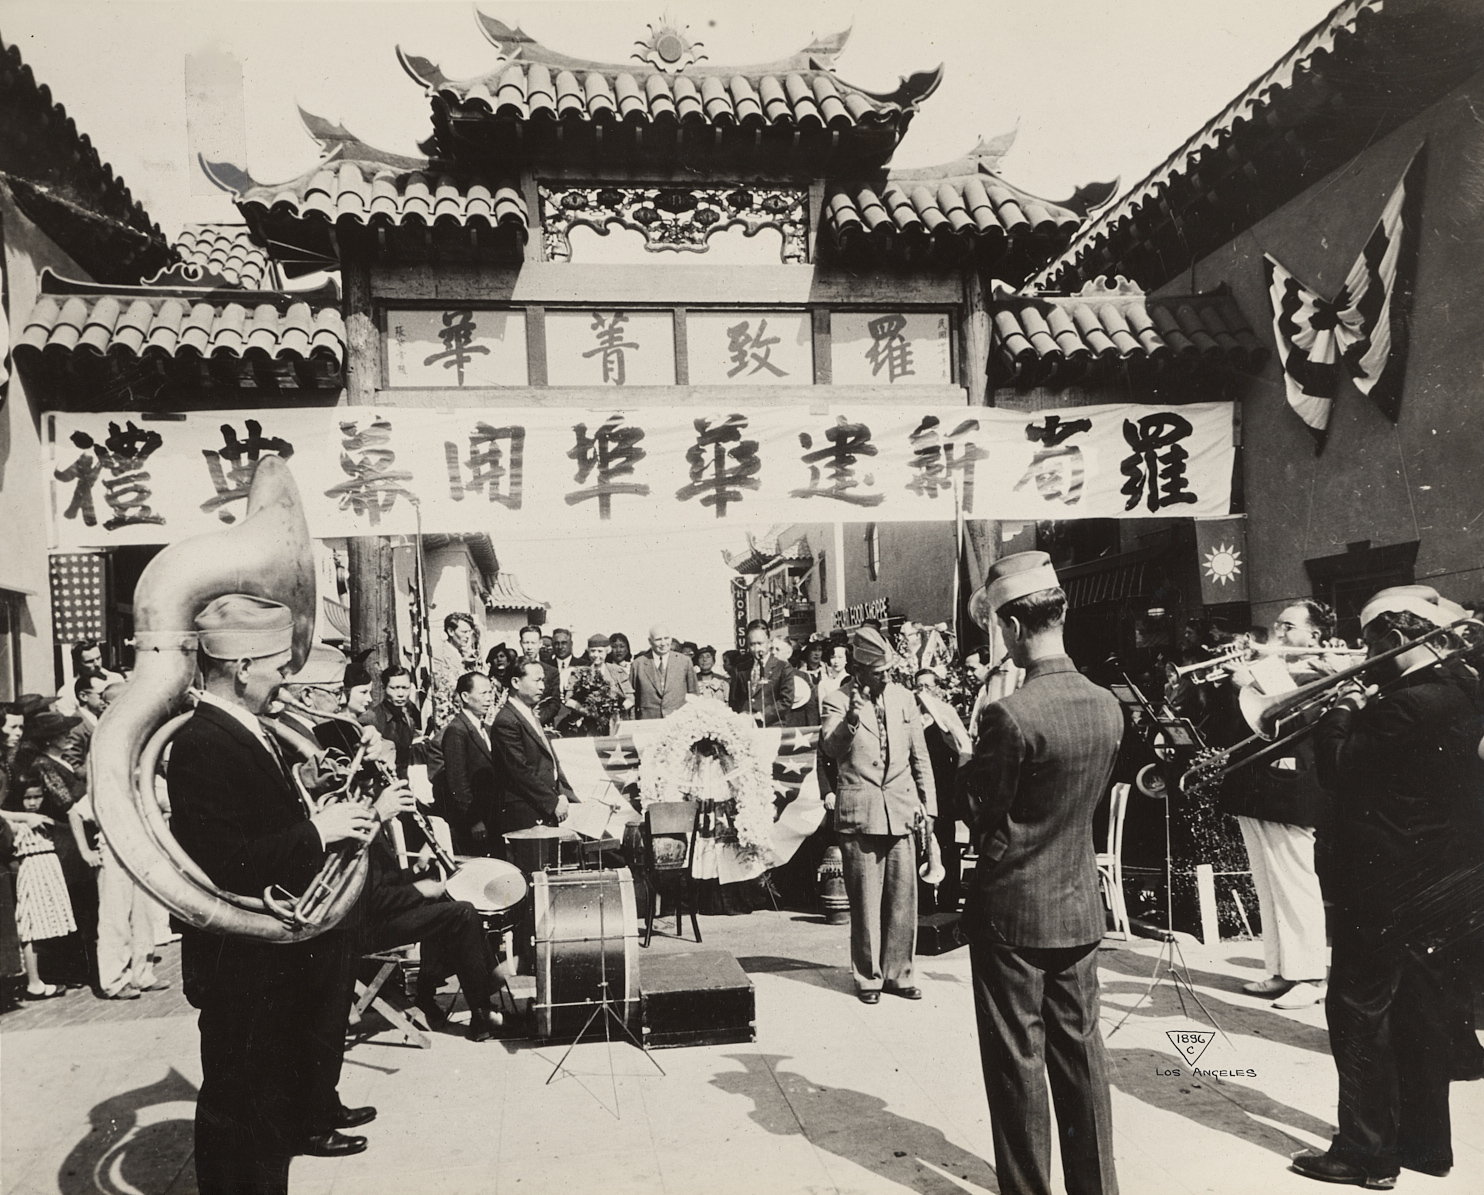 Opening ceremony of New Chinatown (1938)